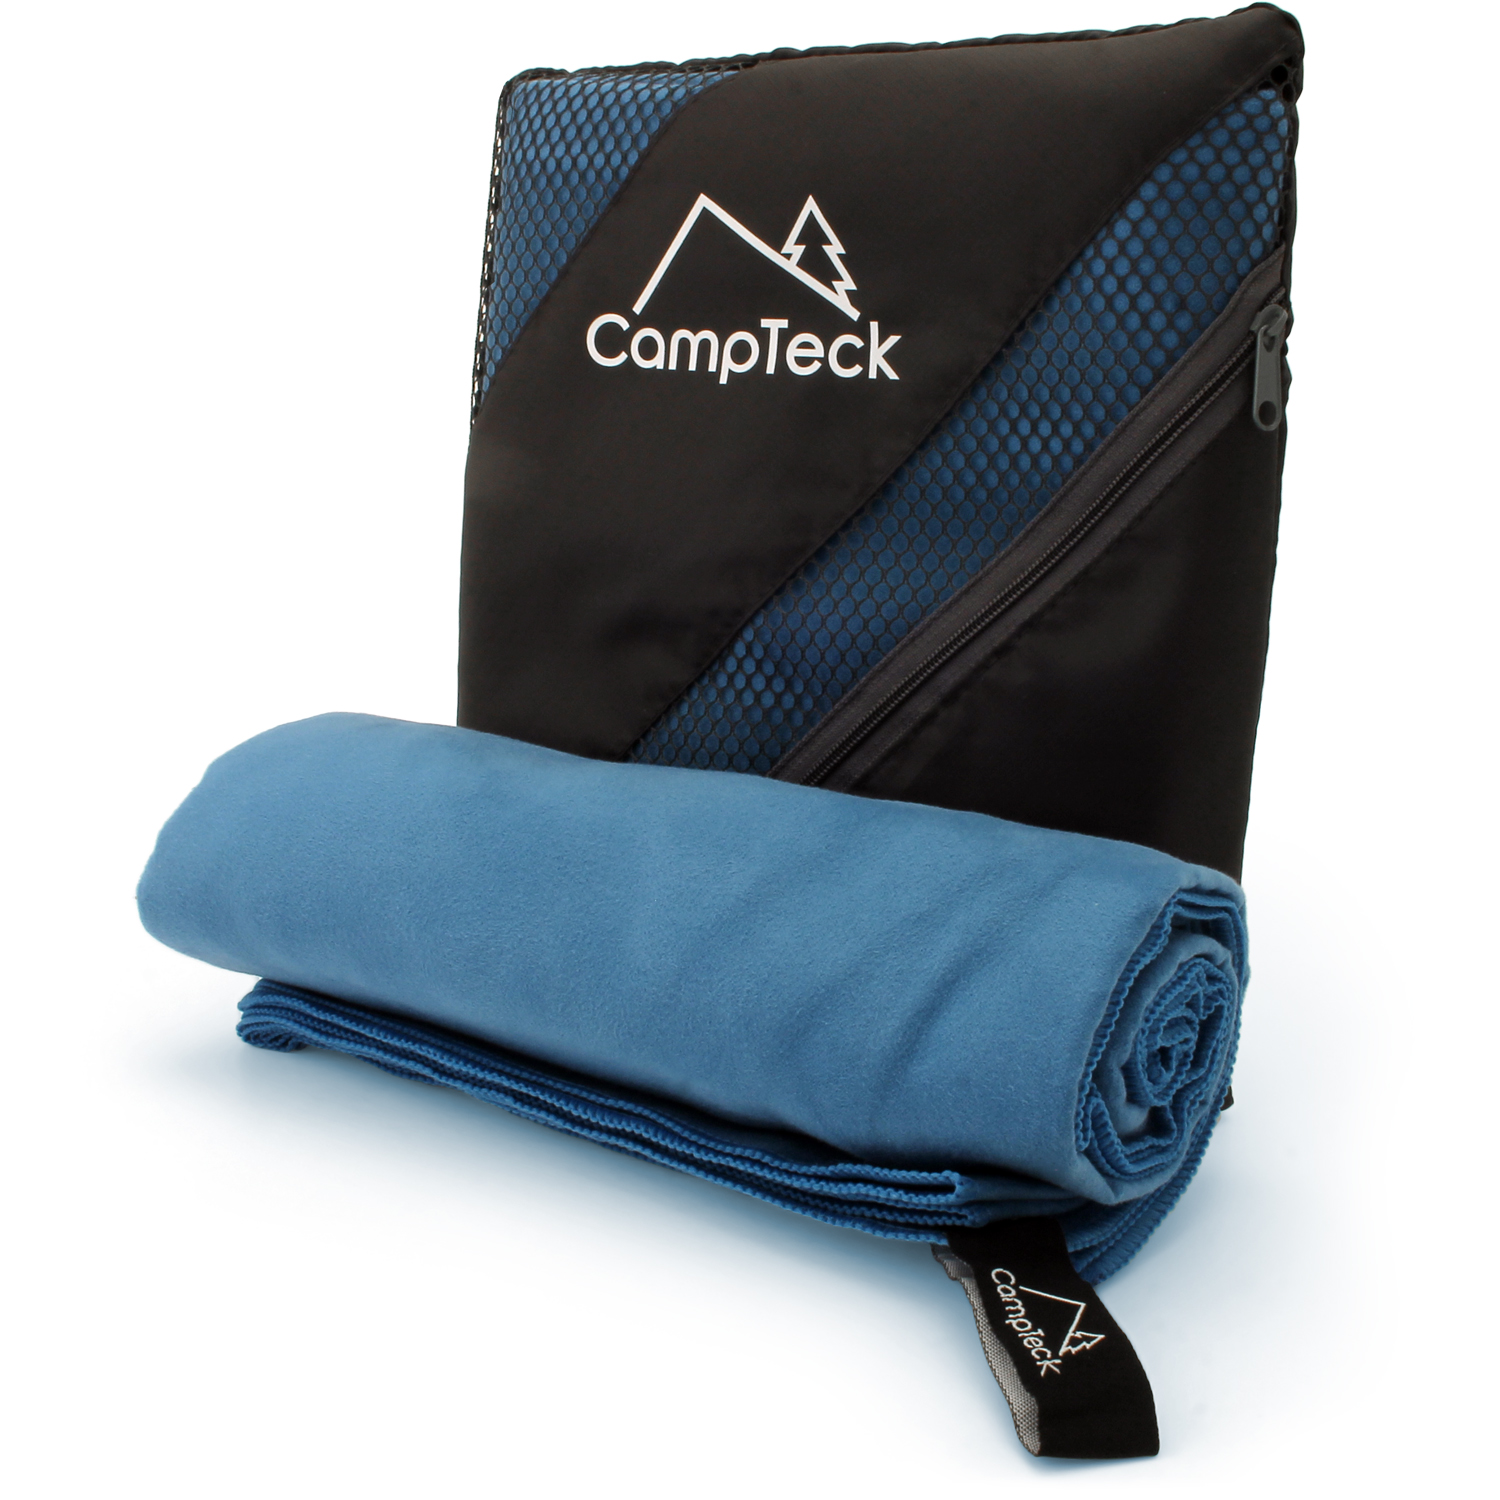 CampTeck Large (180x80cm) Lightweight and Compact Microfibre Towel for Sports, Gym, Beach, Swimming, Yoga, Camping